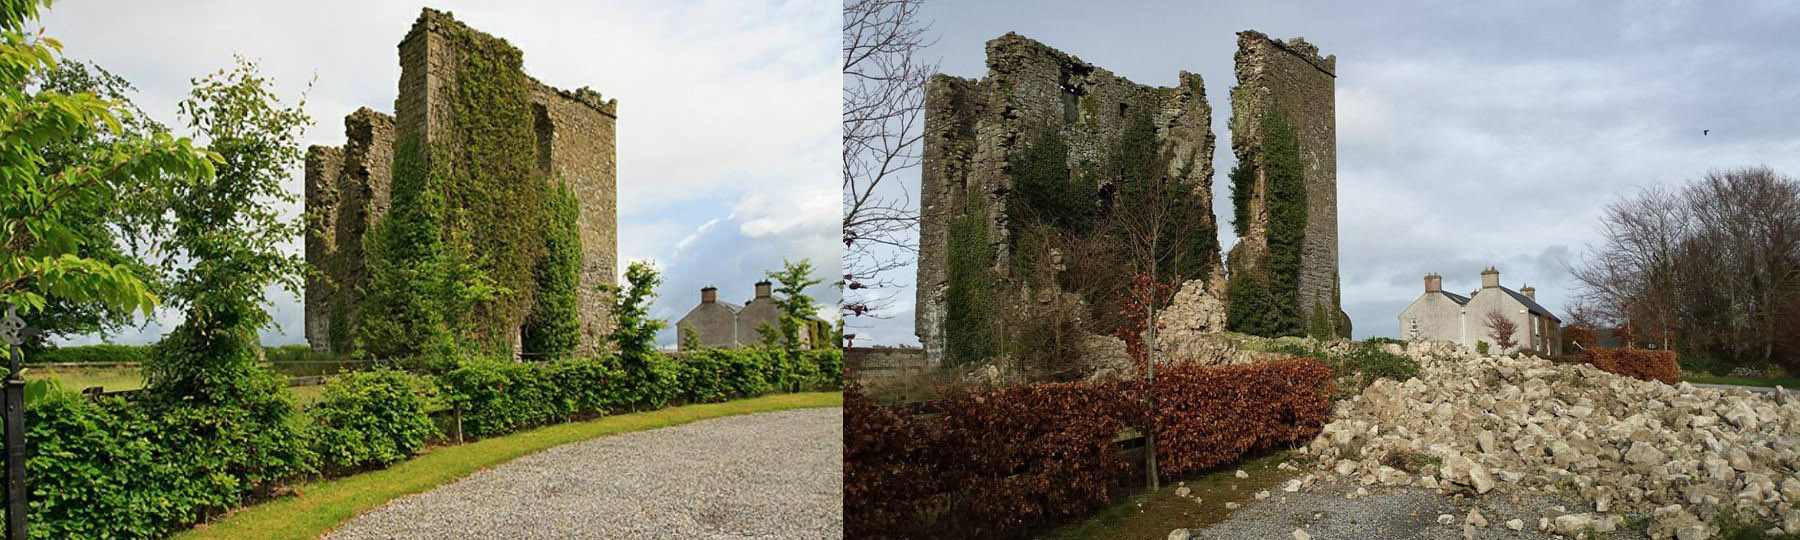 Coolbanagher Castle last year, and immediately after the storm on February 17. (photos courtesy of Laois Archaeology)